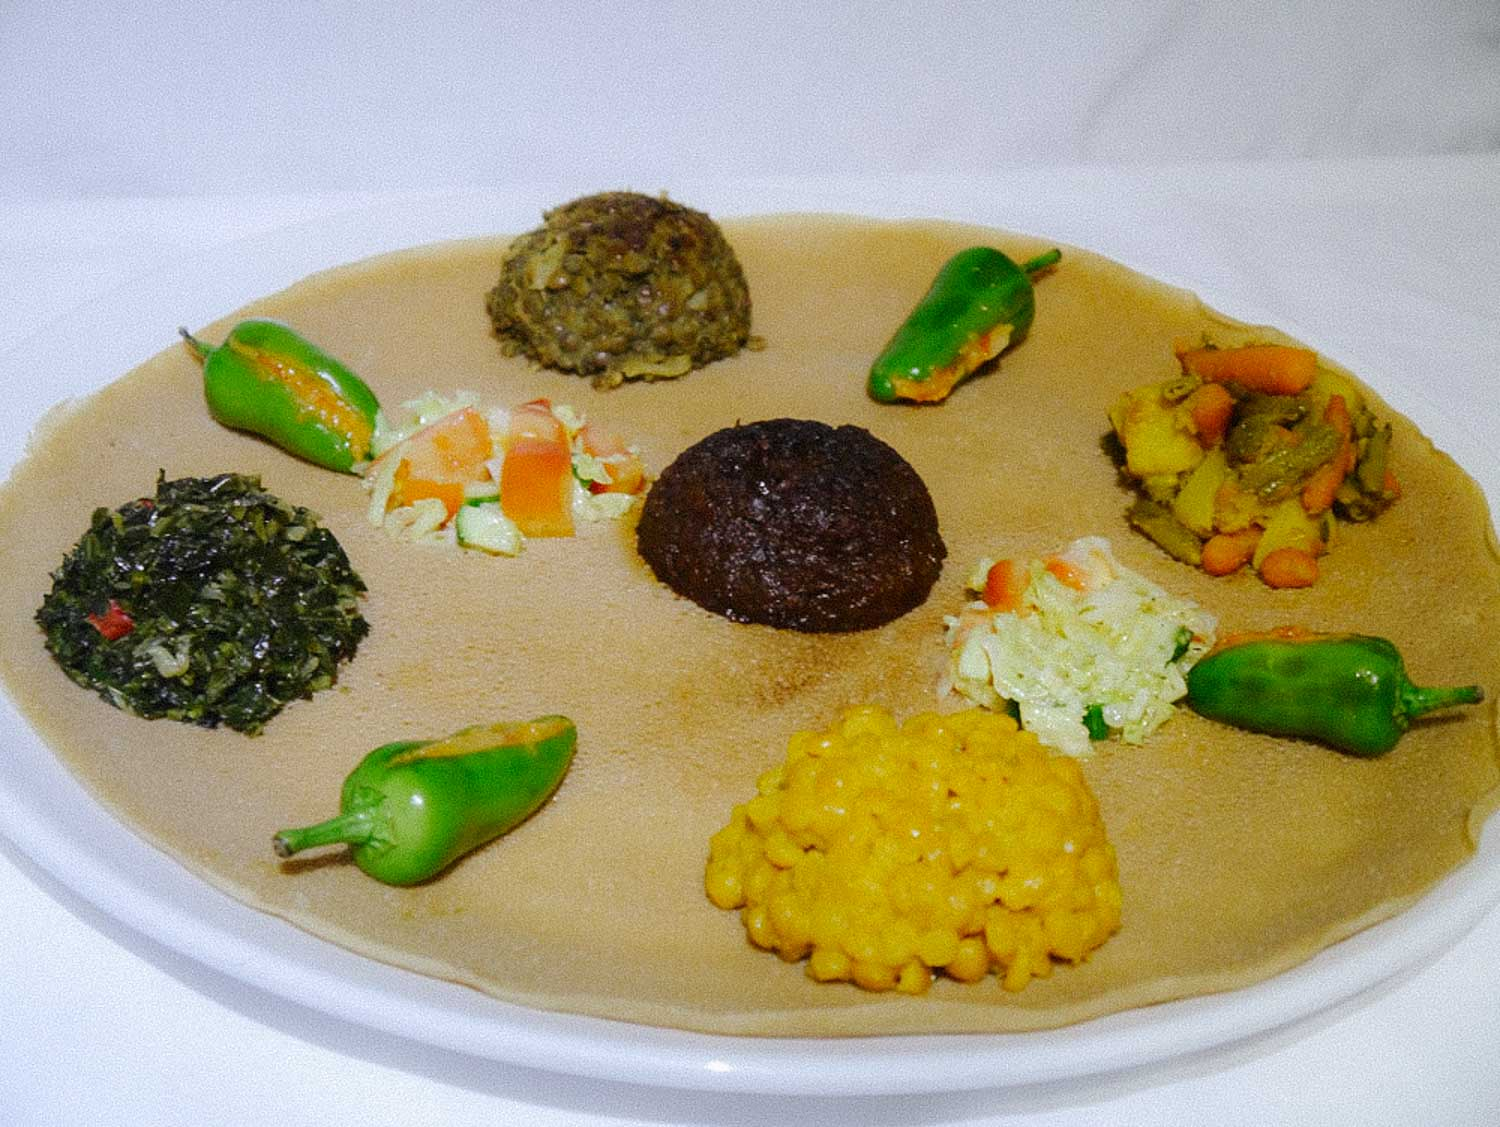 Around the world in 7 London meals - Lalibela